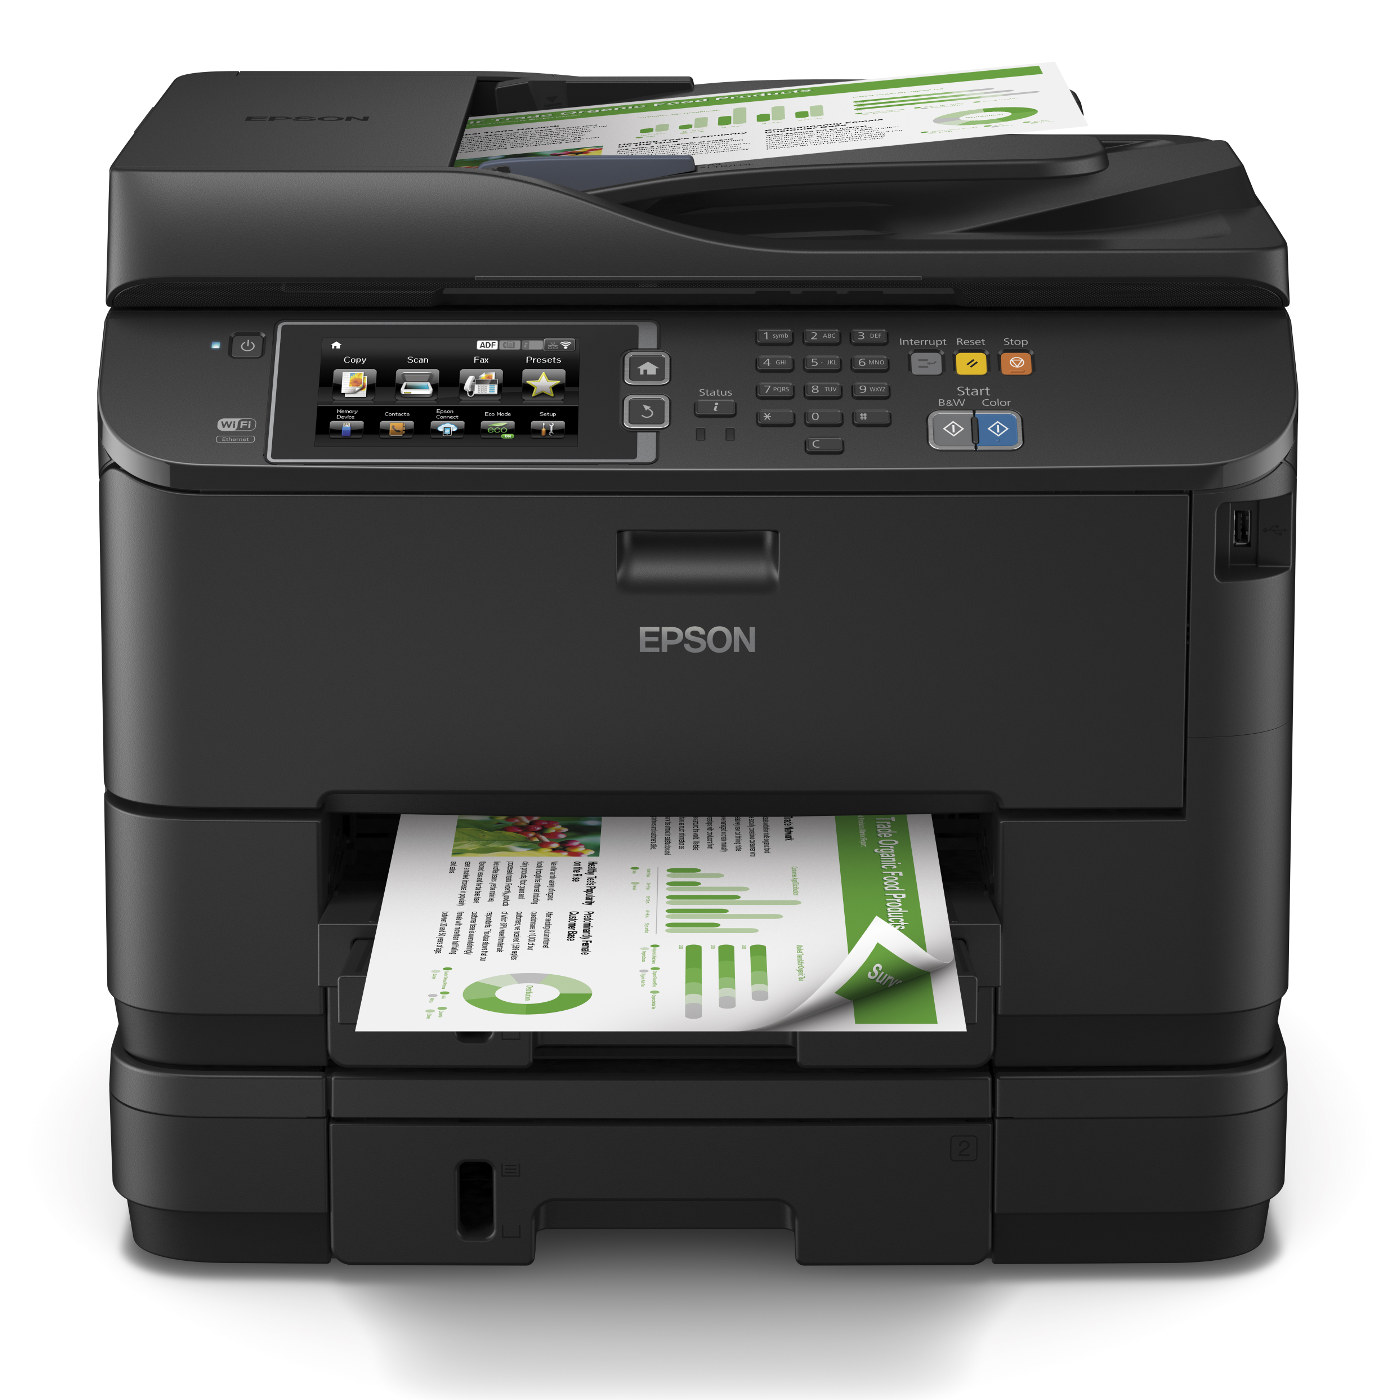 epson workforce wf 4640dtwf imprimante multifonction epson sur. Black Bedroom Furniture Sets. Home Design Ideas